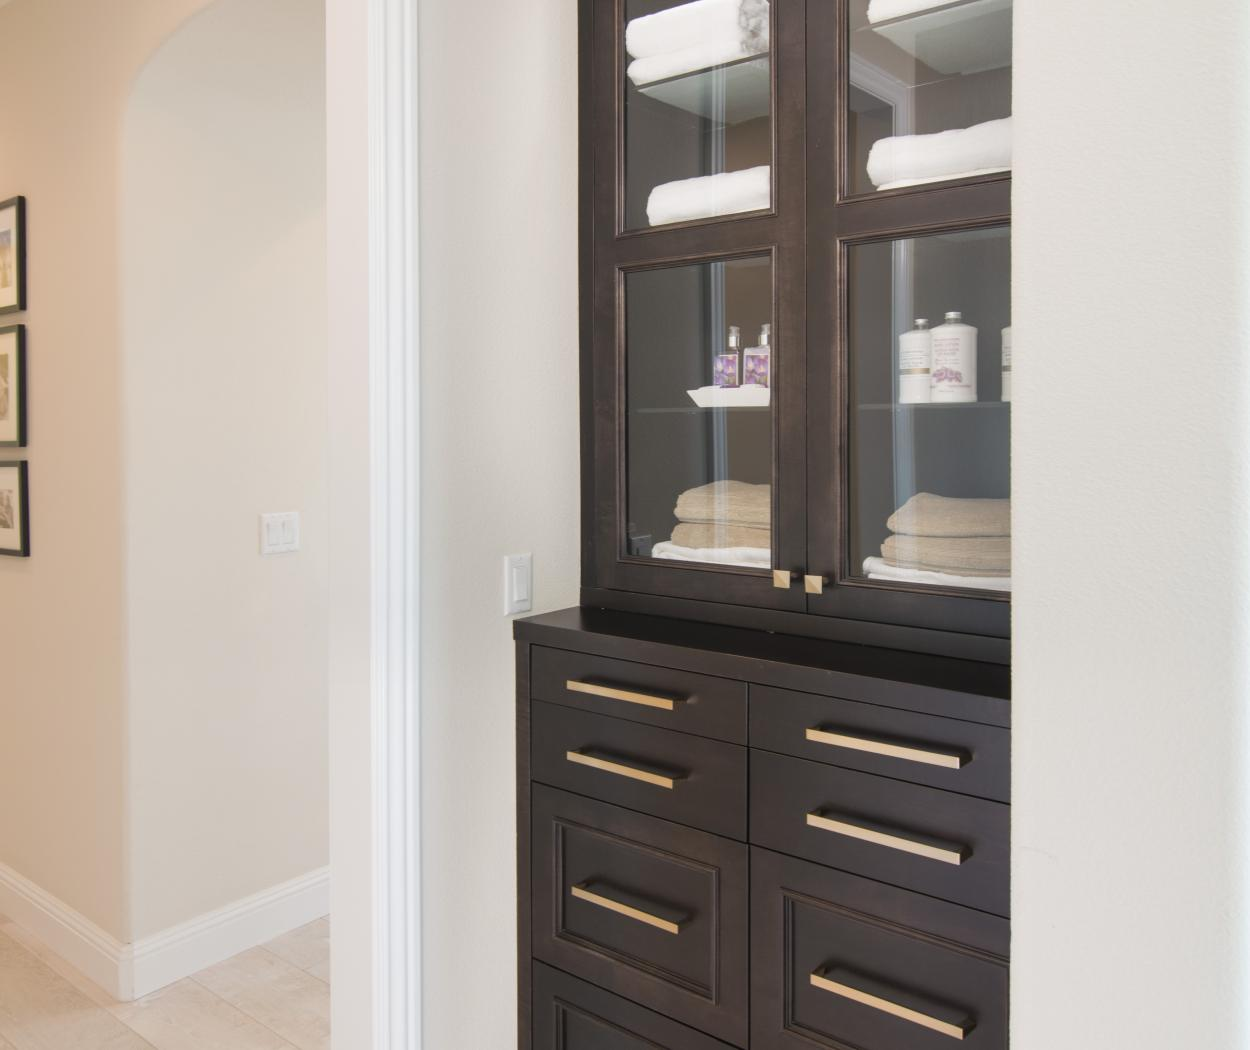 Beautiful Built-In with Glass Doors and Finished in a Dark Espresso Stain